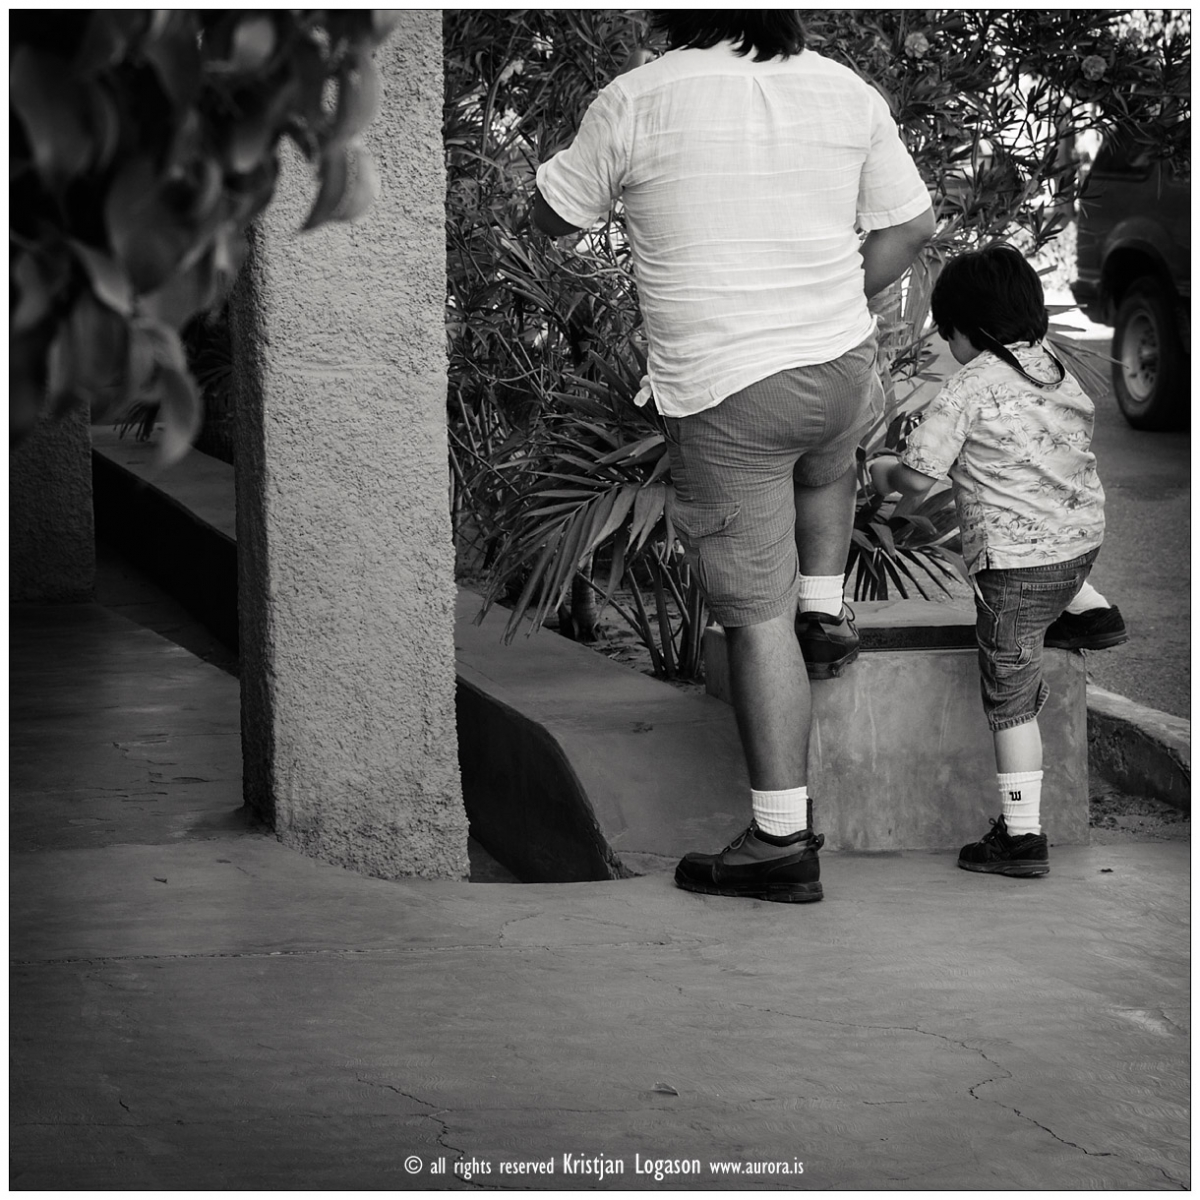 Father and son eating Ice cream stand in same position, in a street of Todos Santos Baja california, Mexico